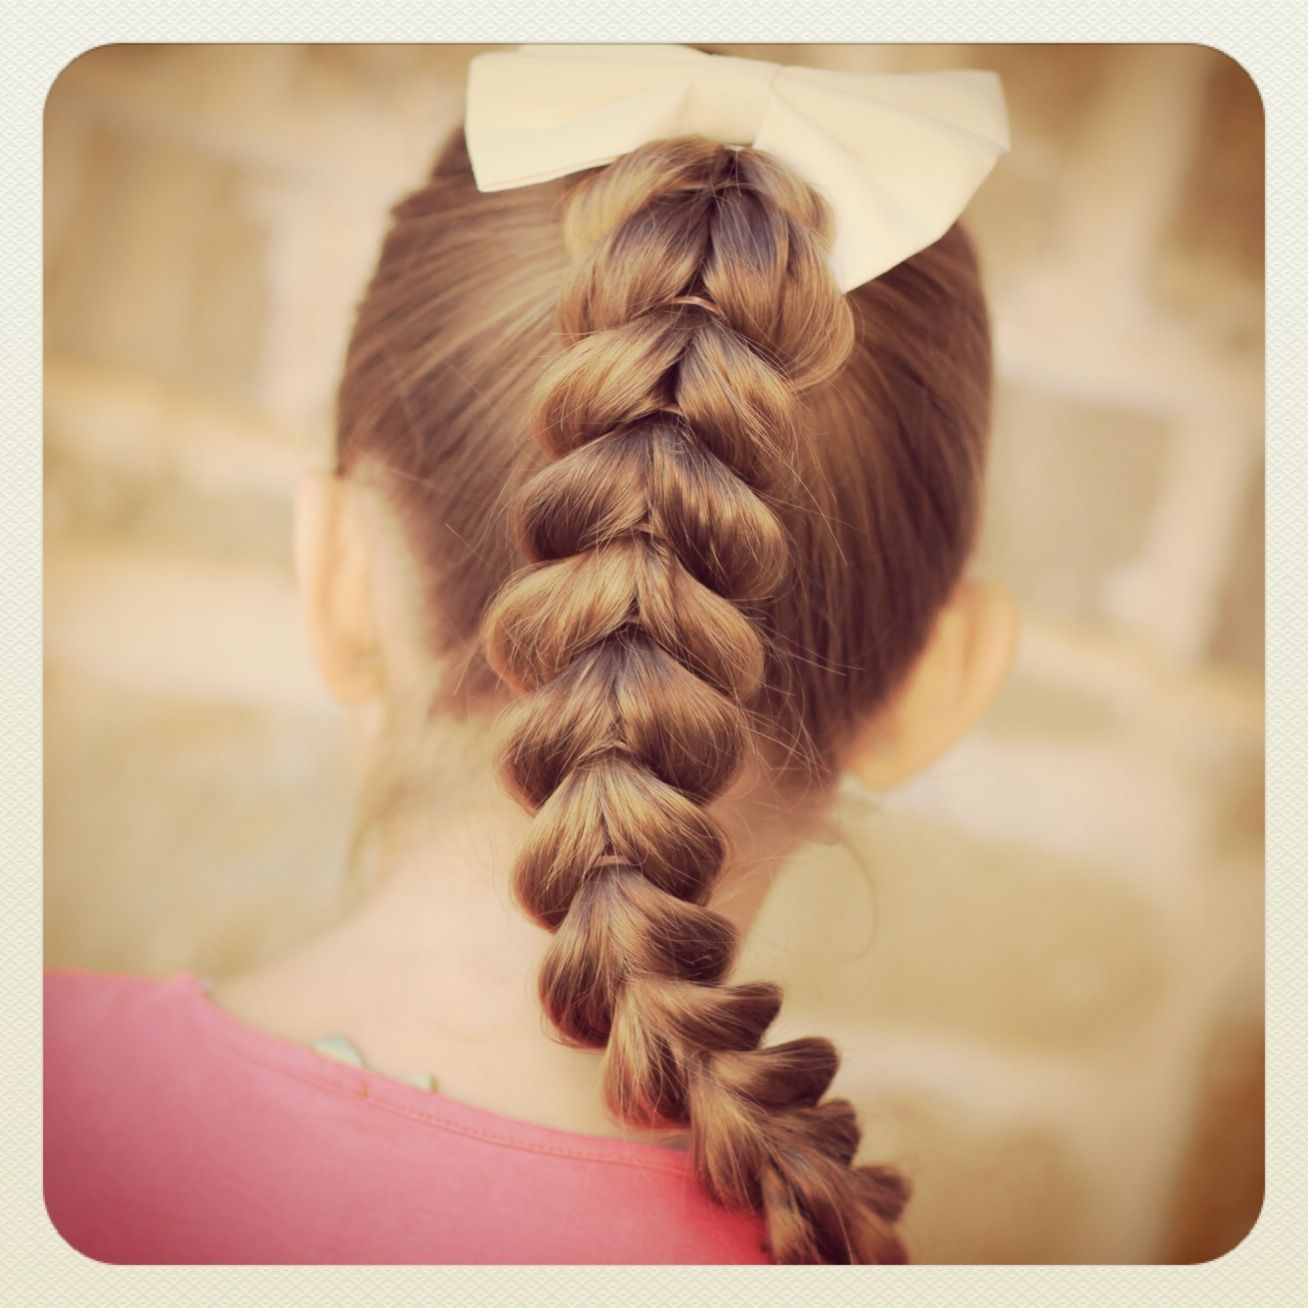 Plus, this Pull-Through Braid is so easy, even a daddy can ...